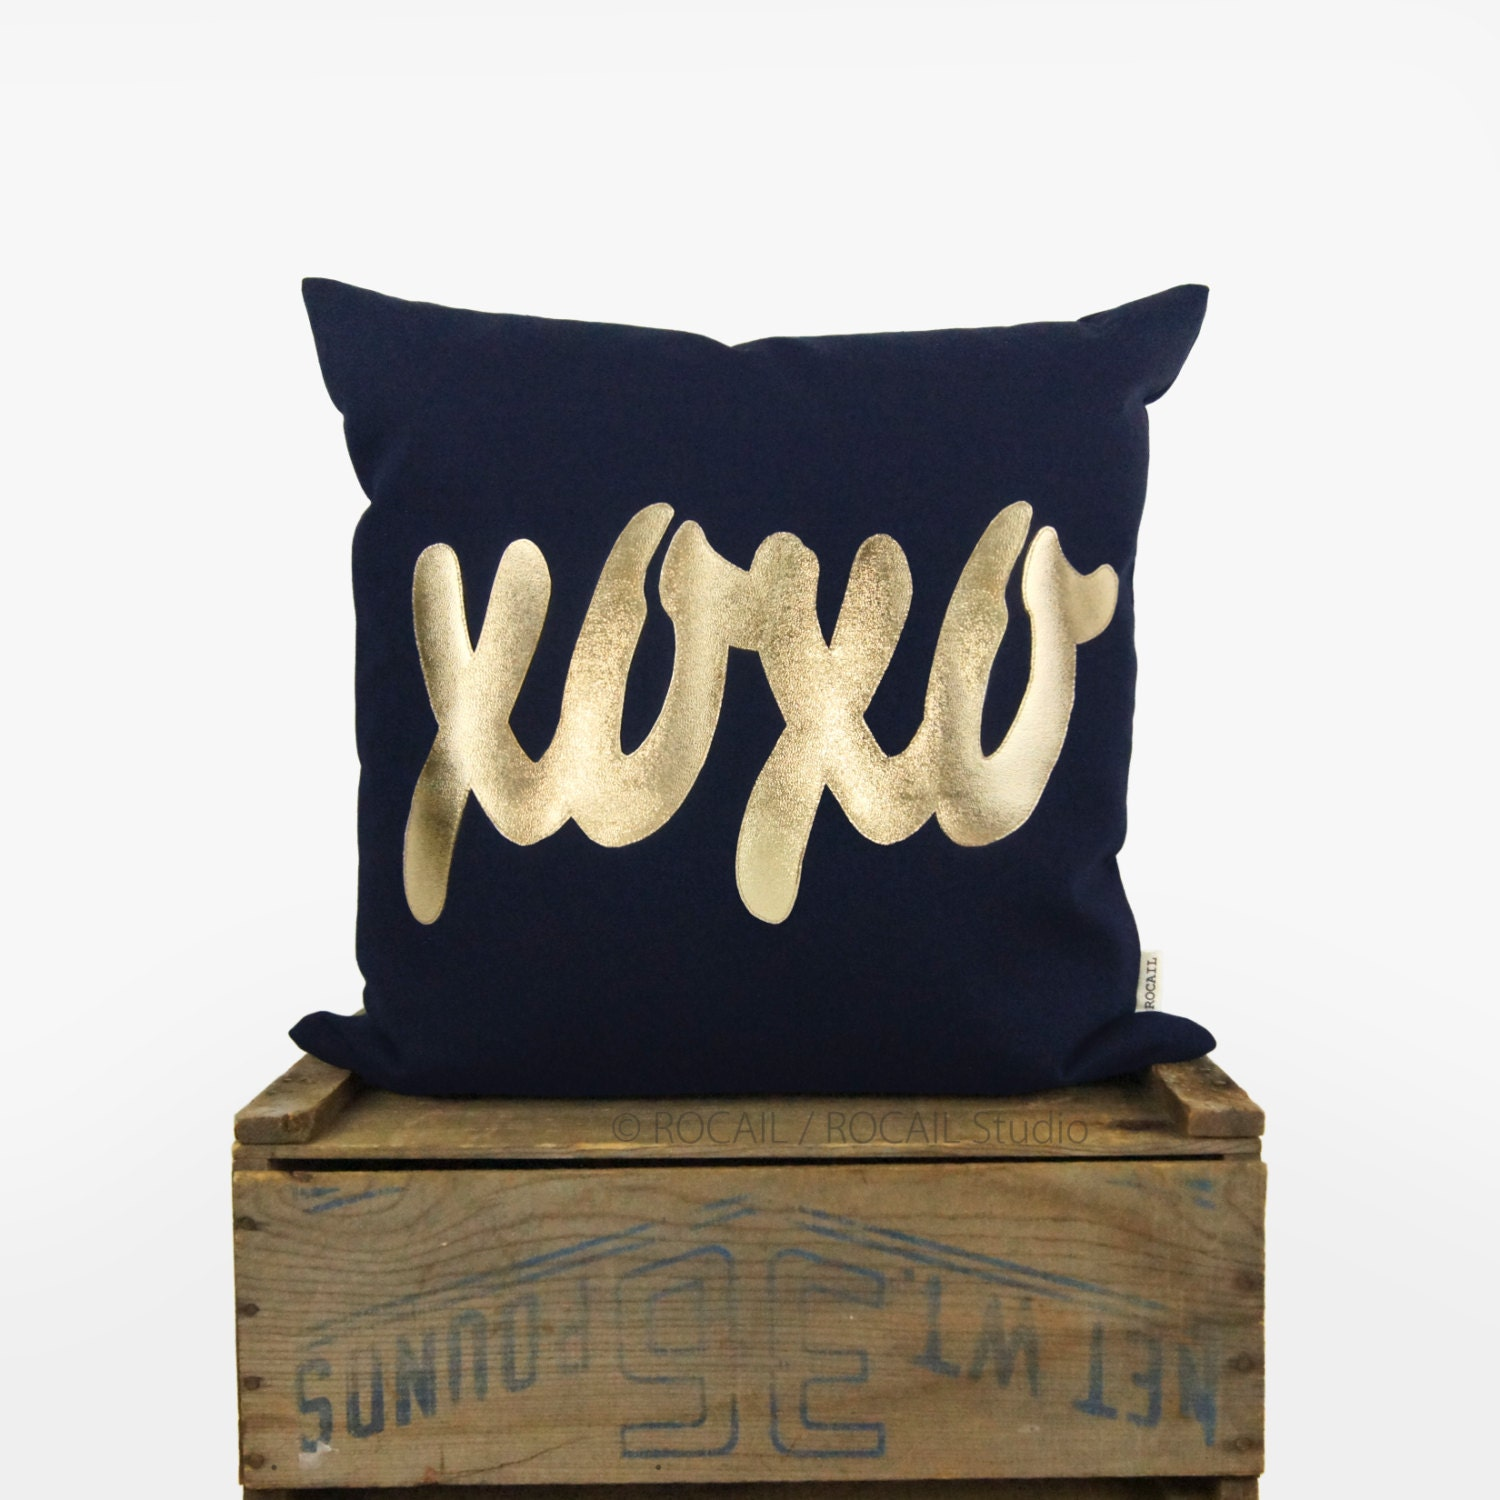 Throw Pillow With The Word Home On It : Navy Blue and Gold XOXO Word Decorative Pillow Case 12x18